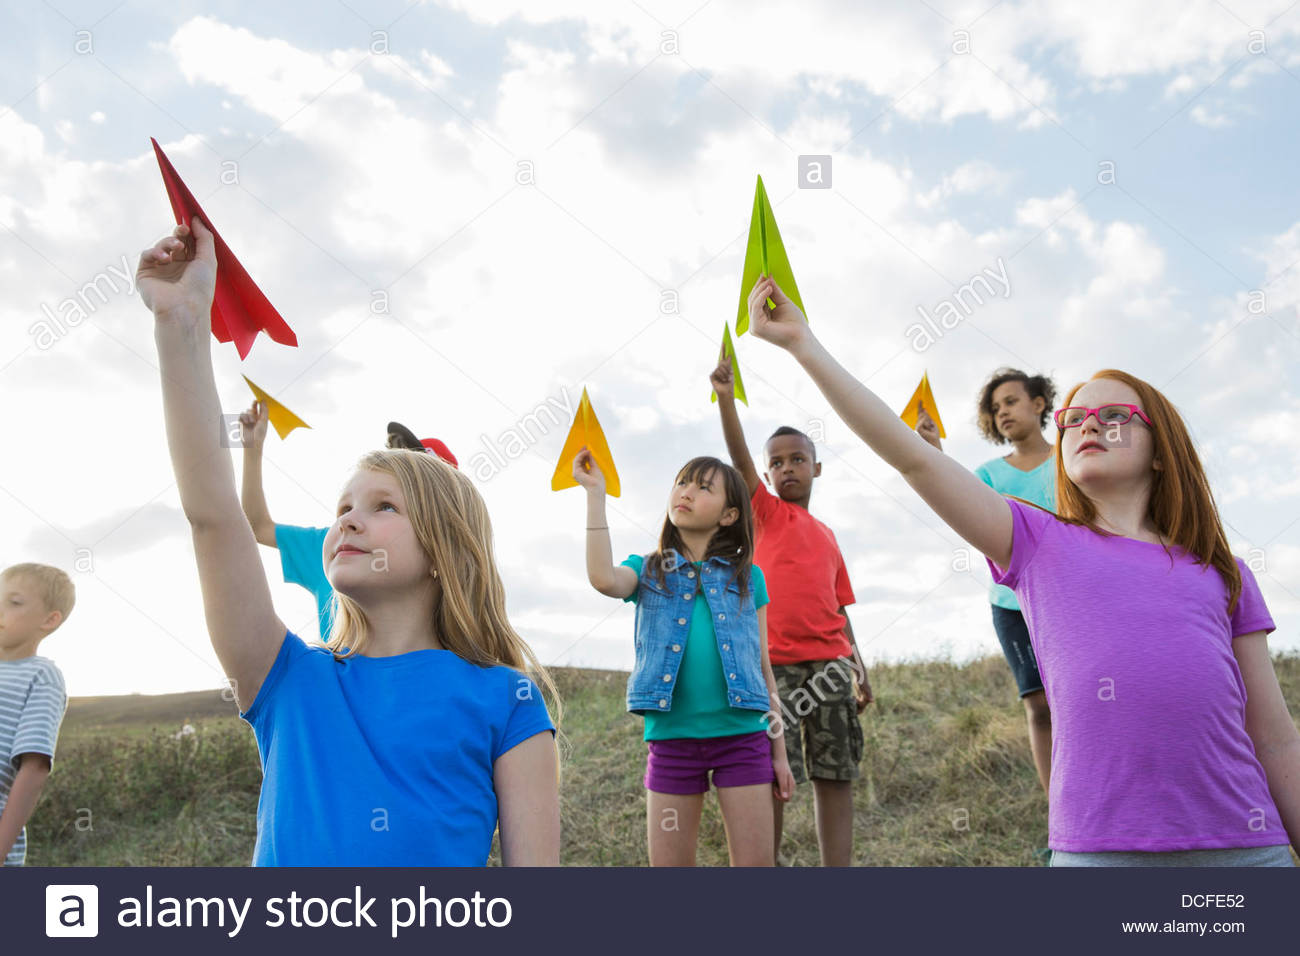 Schoolchildren aiming paper airplanes on field - Stock Image